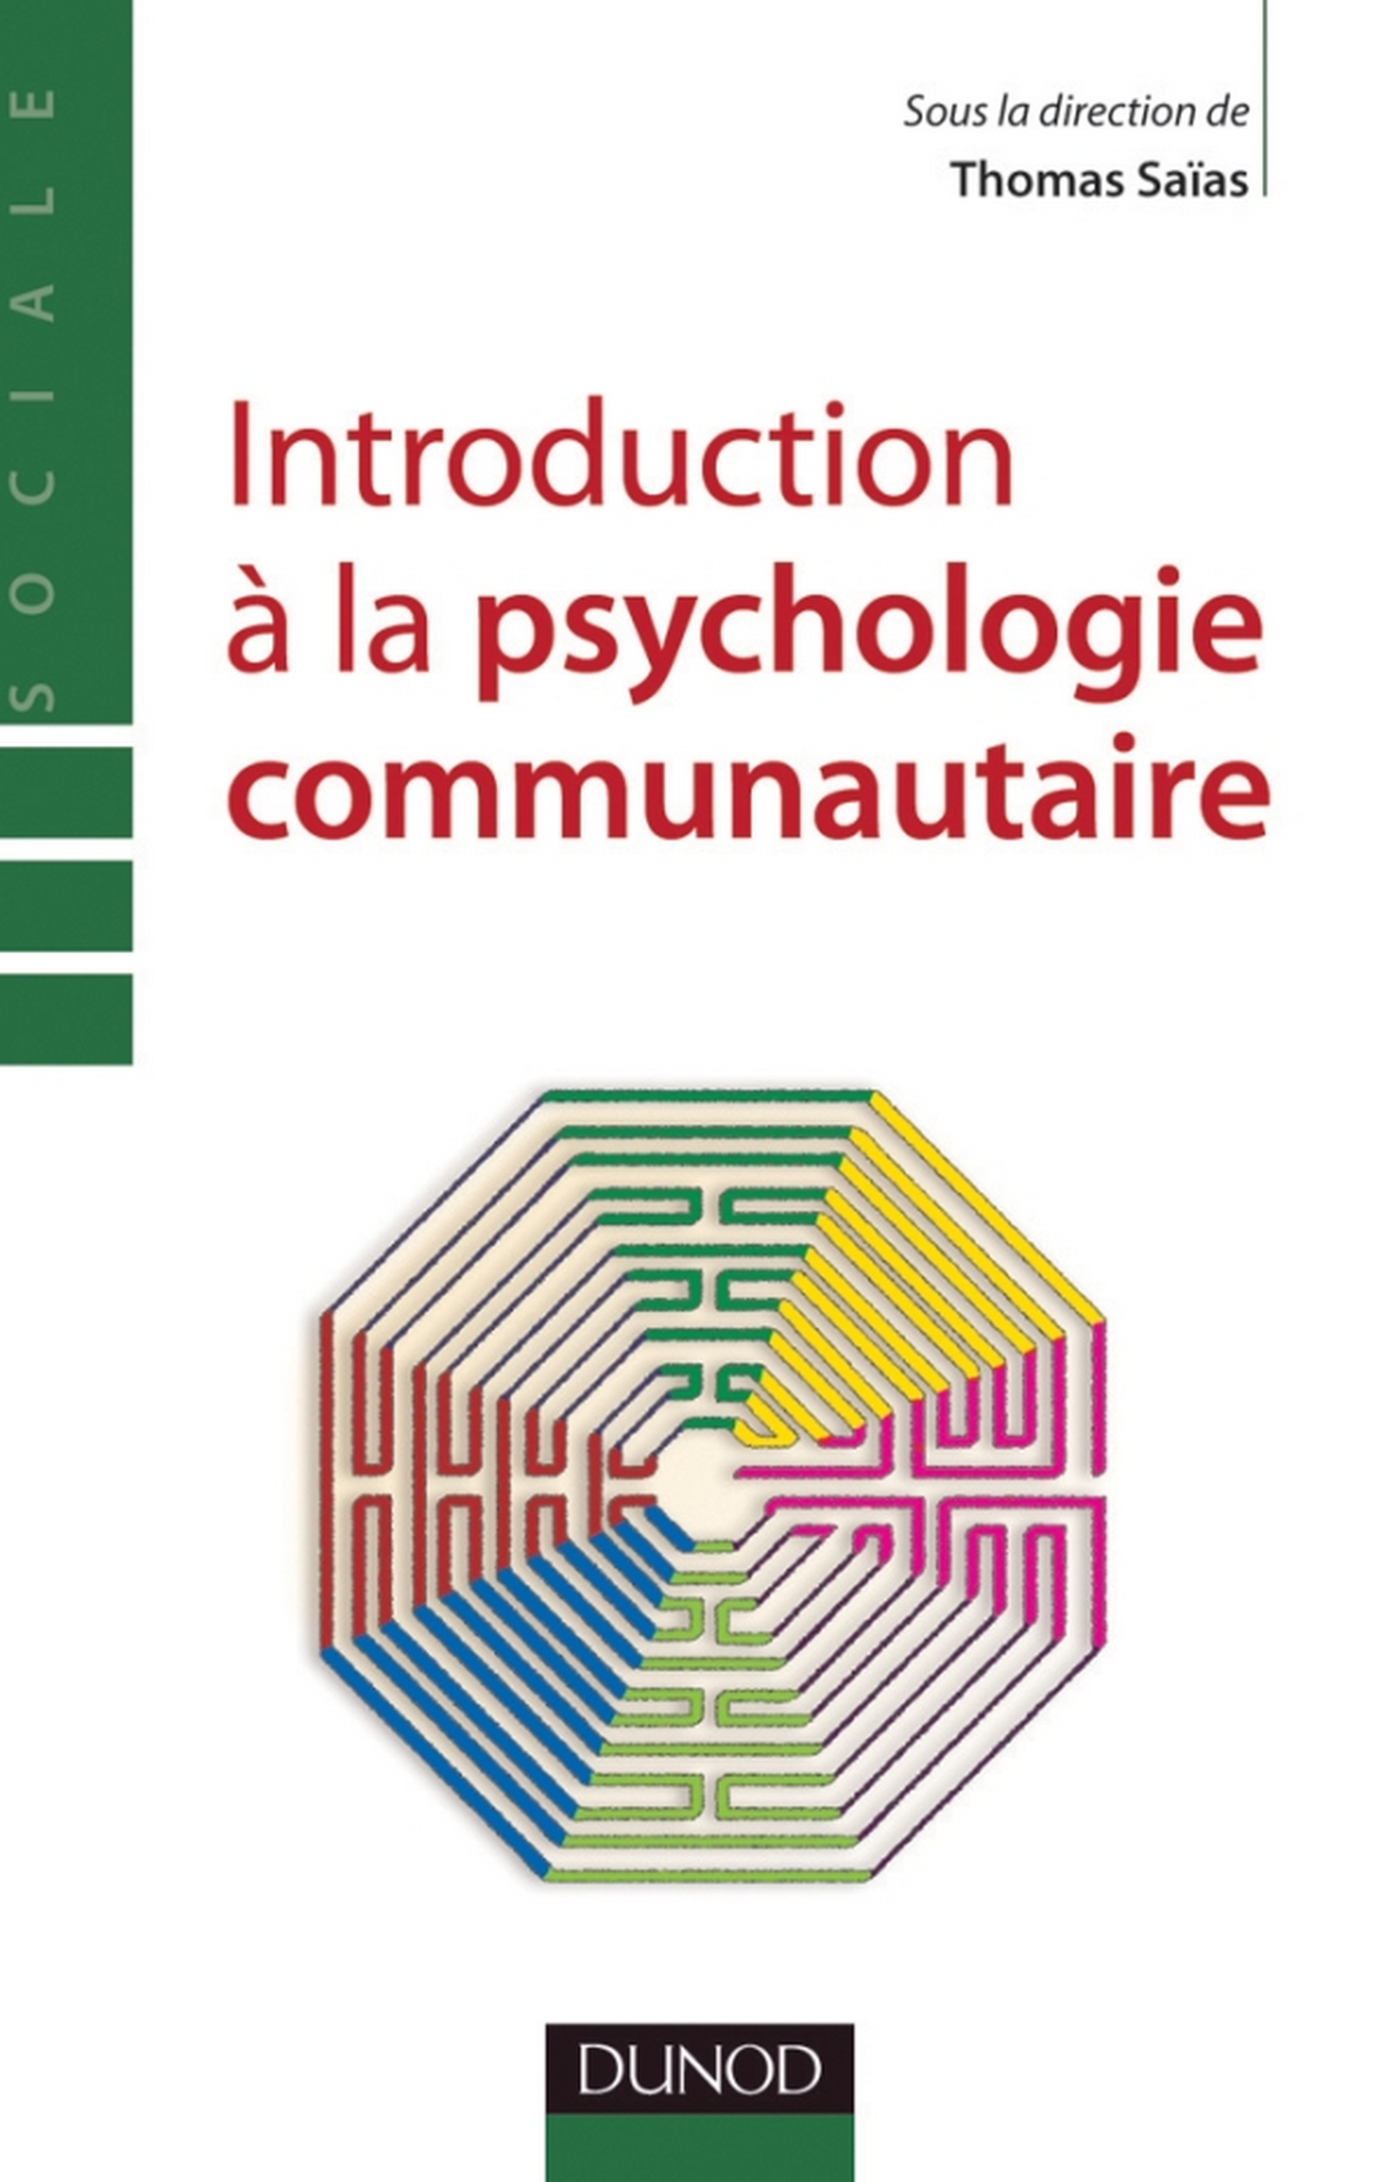 Introduction à la psychologie communautaire